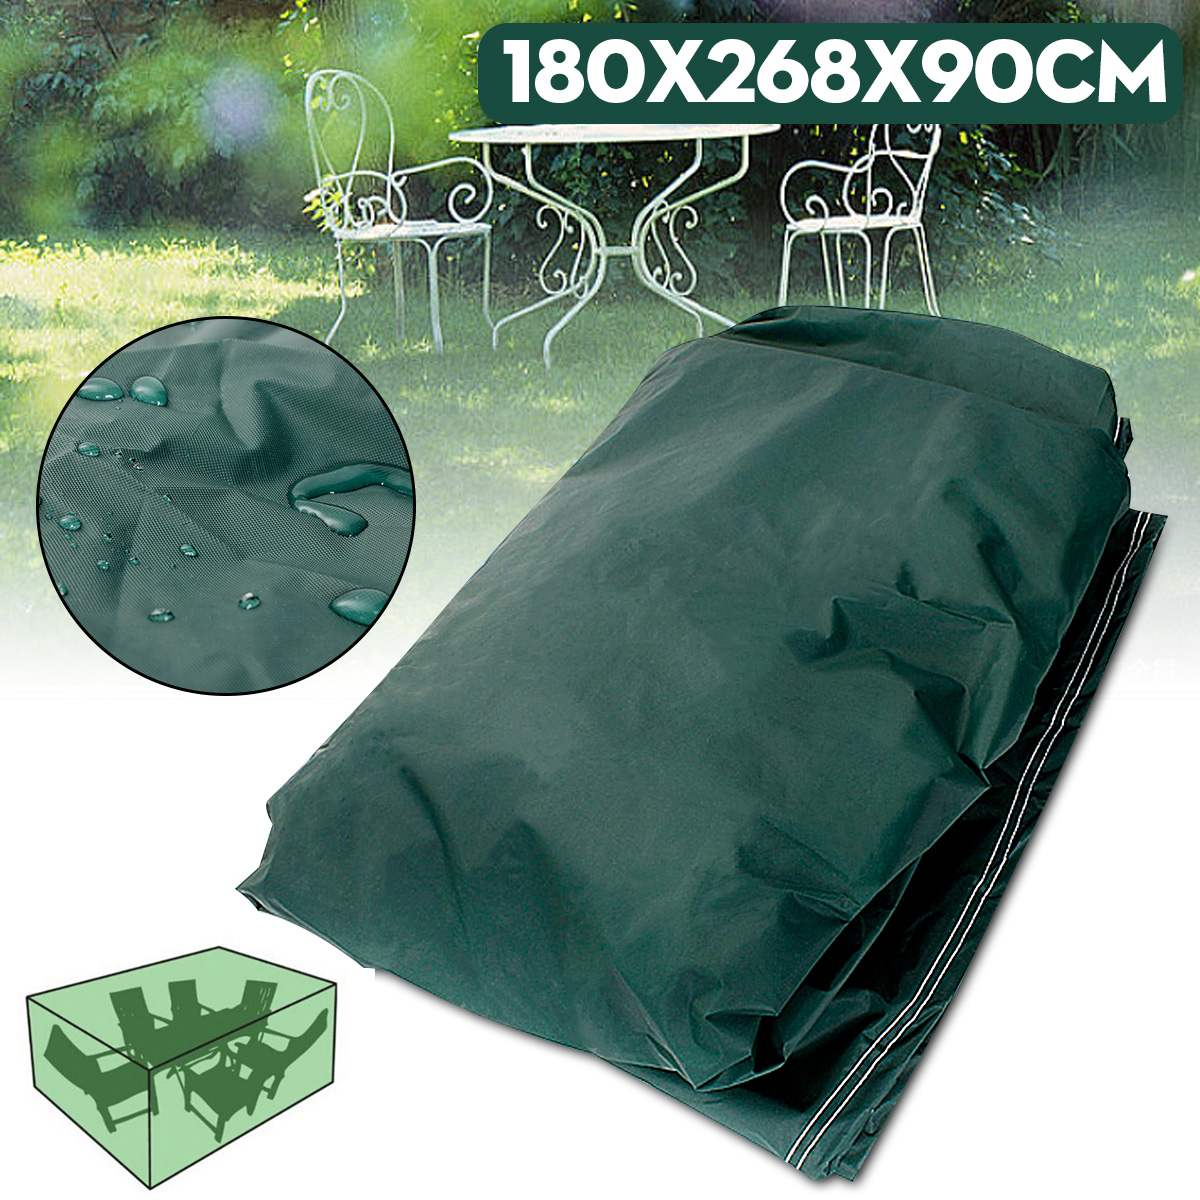 180x268x90cm Garden Outdoor Furniture Waterproof Breathable Dust Cover Table Shelter Woven Polyethylene